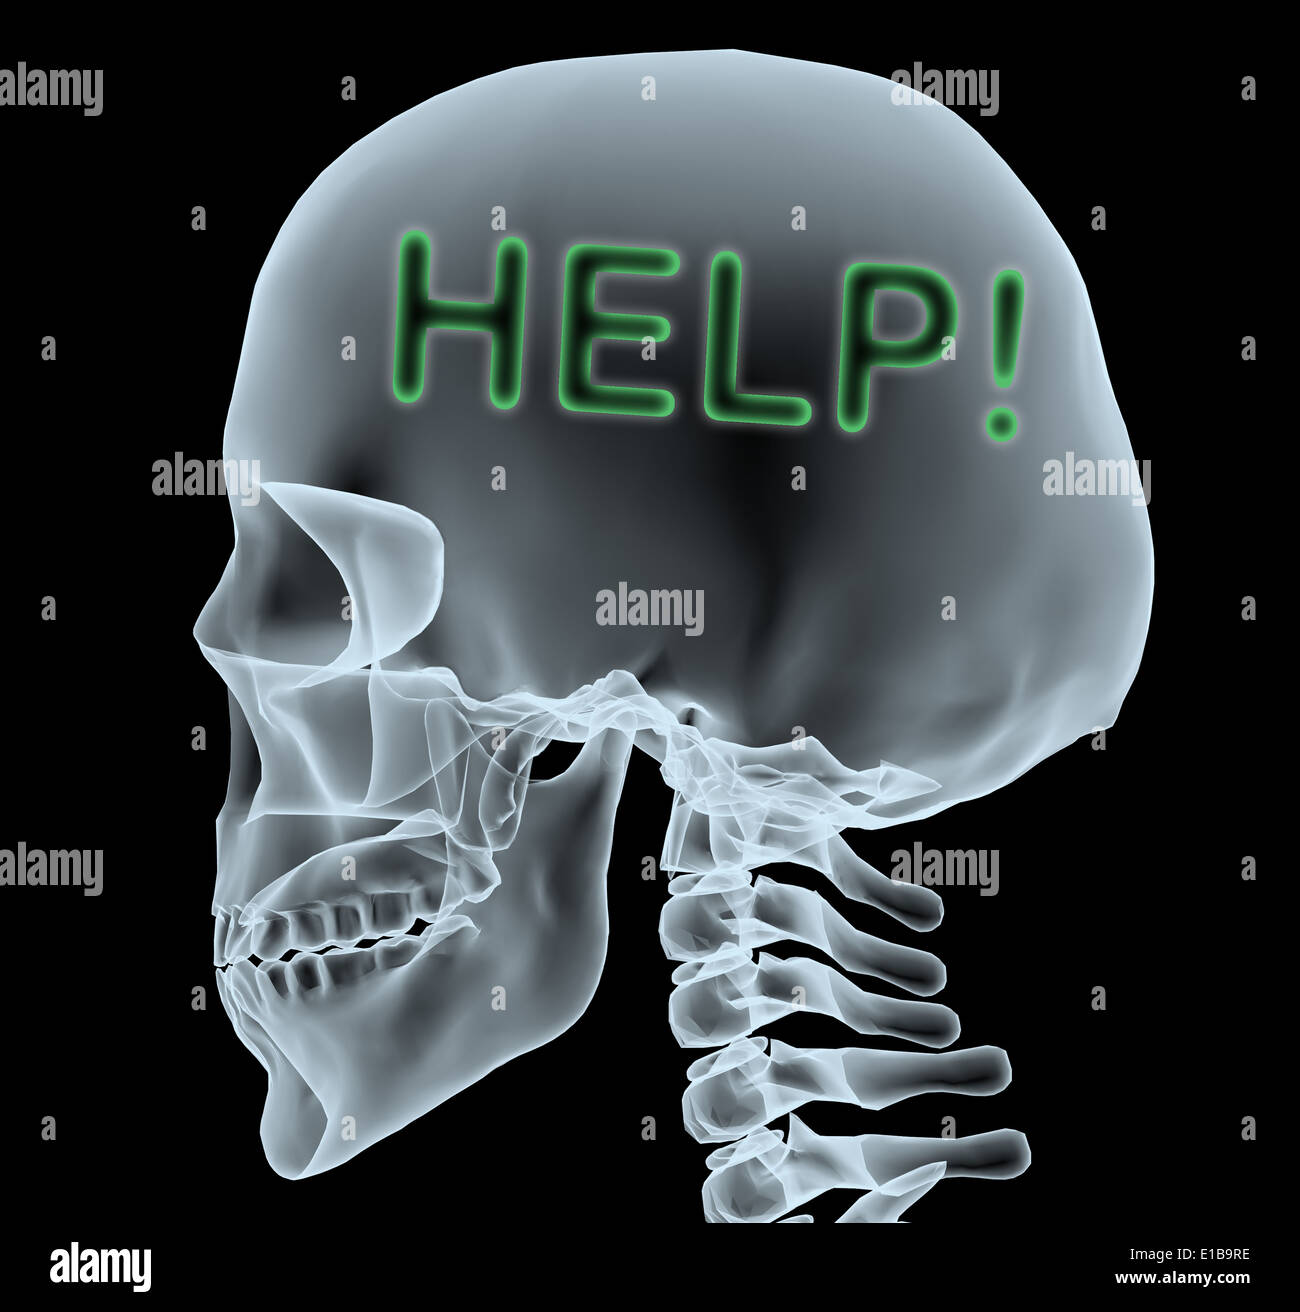 X-ray of a head with help written, 3d illustration - Stock Image